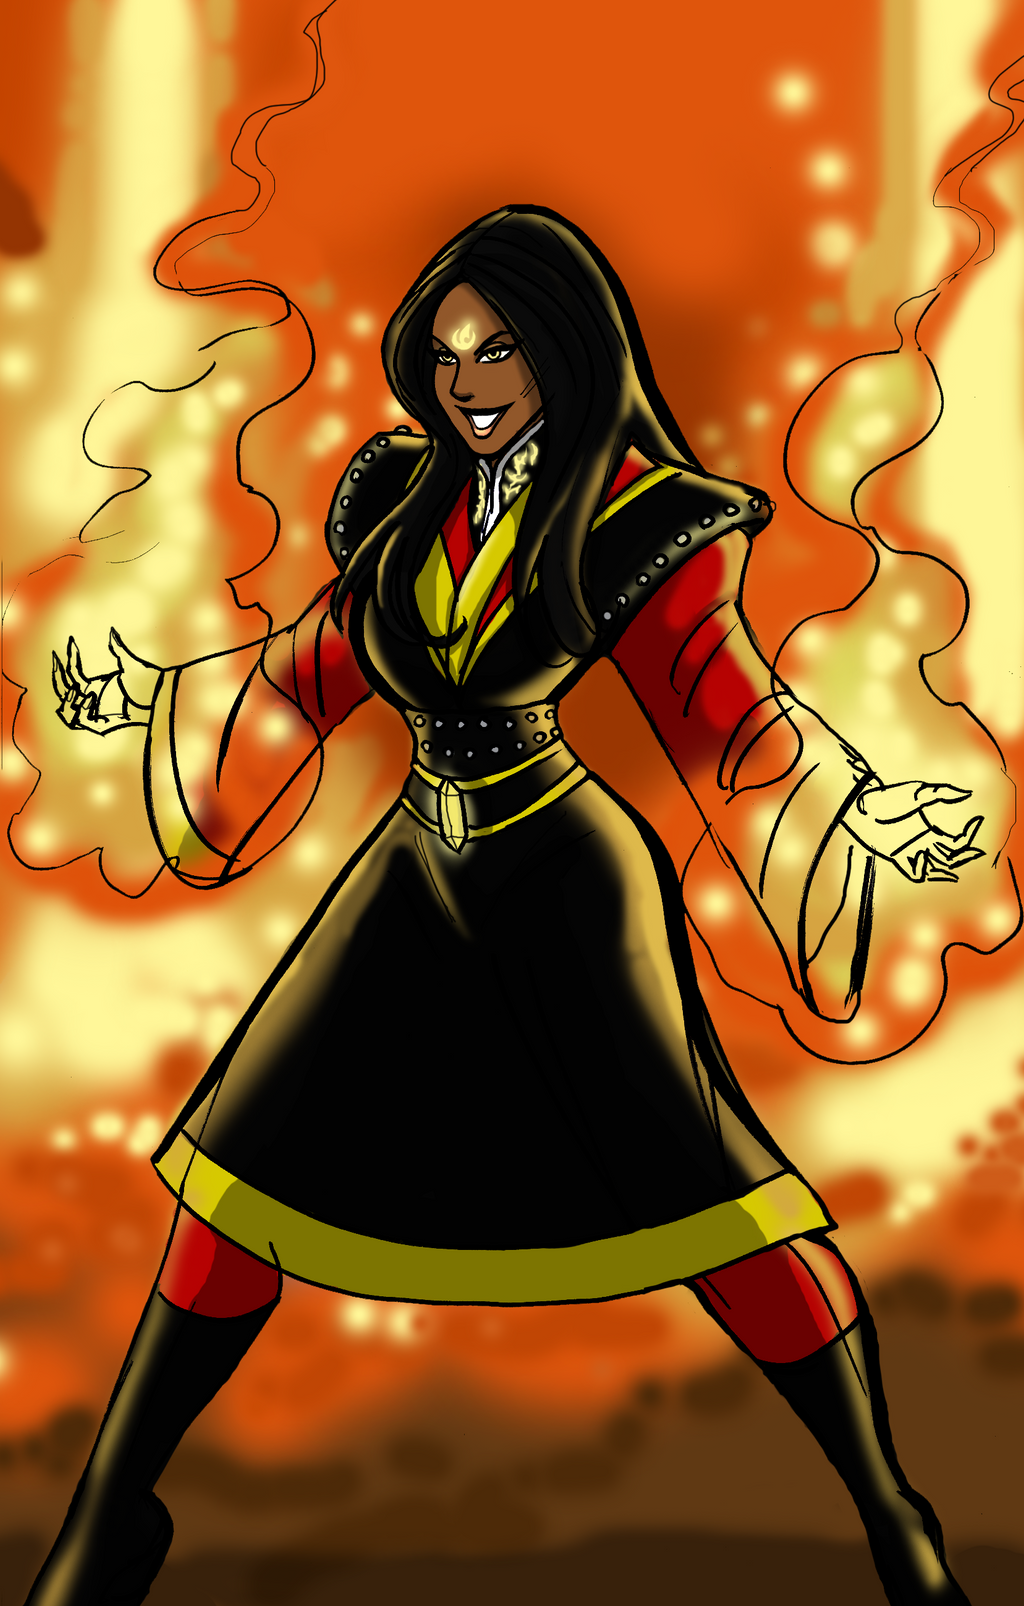 Azula of the Fire Nation by johnnyharadrim on DeviantArt